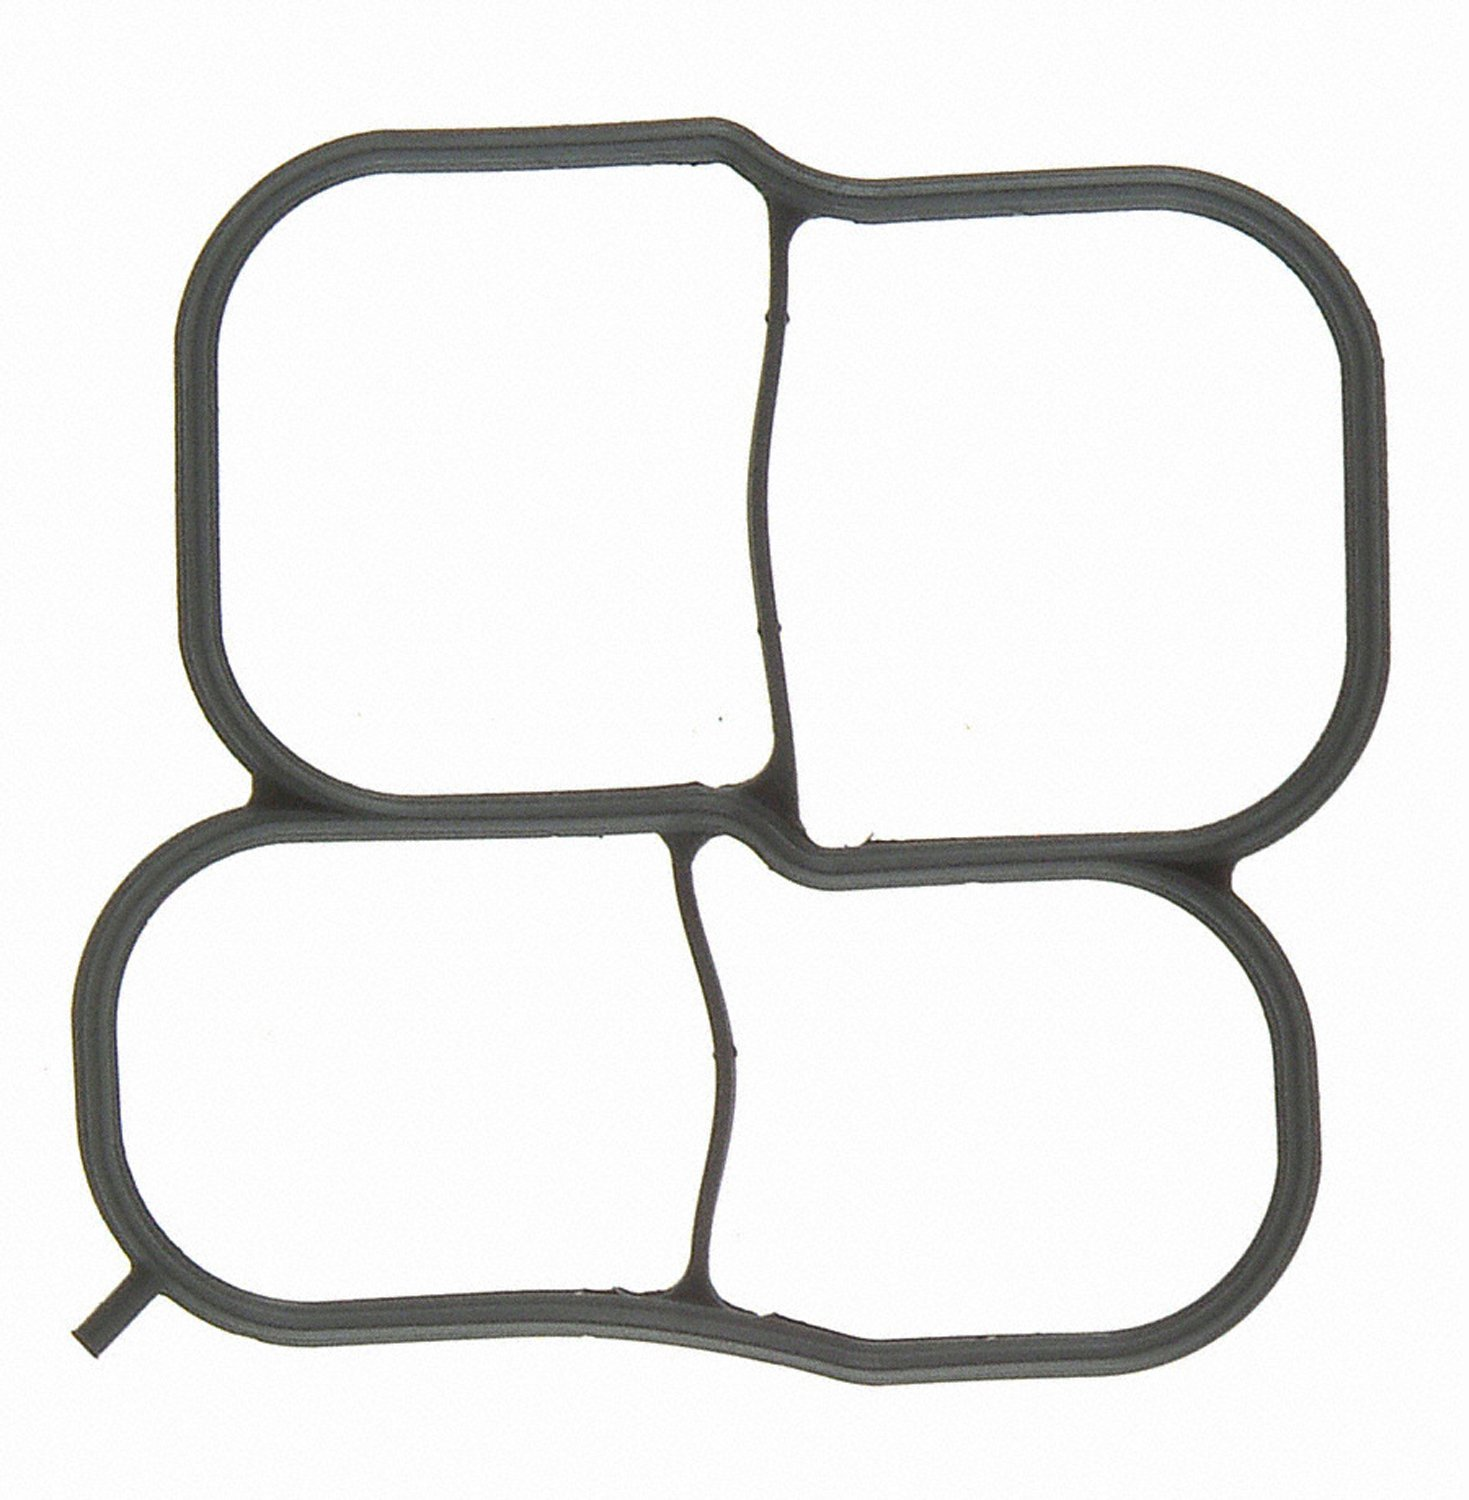 Fel-Pro 61373 Throttle Body Mounting Gasket